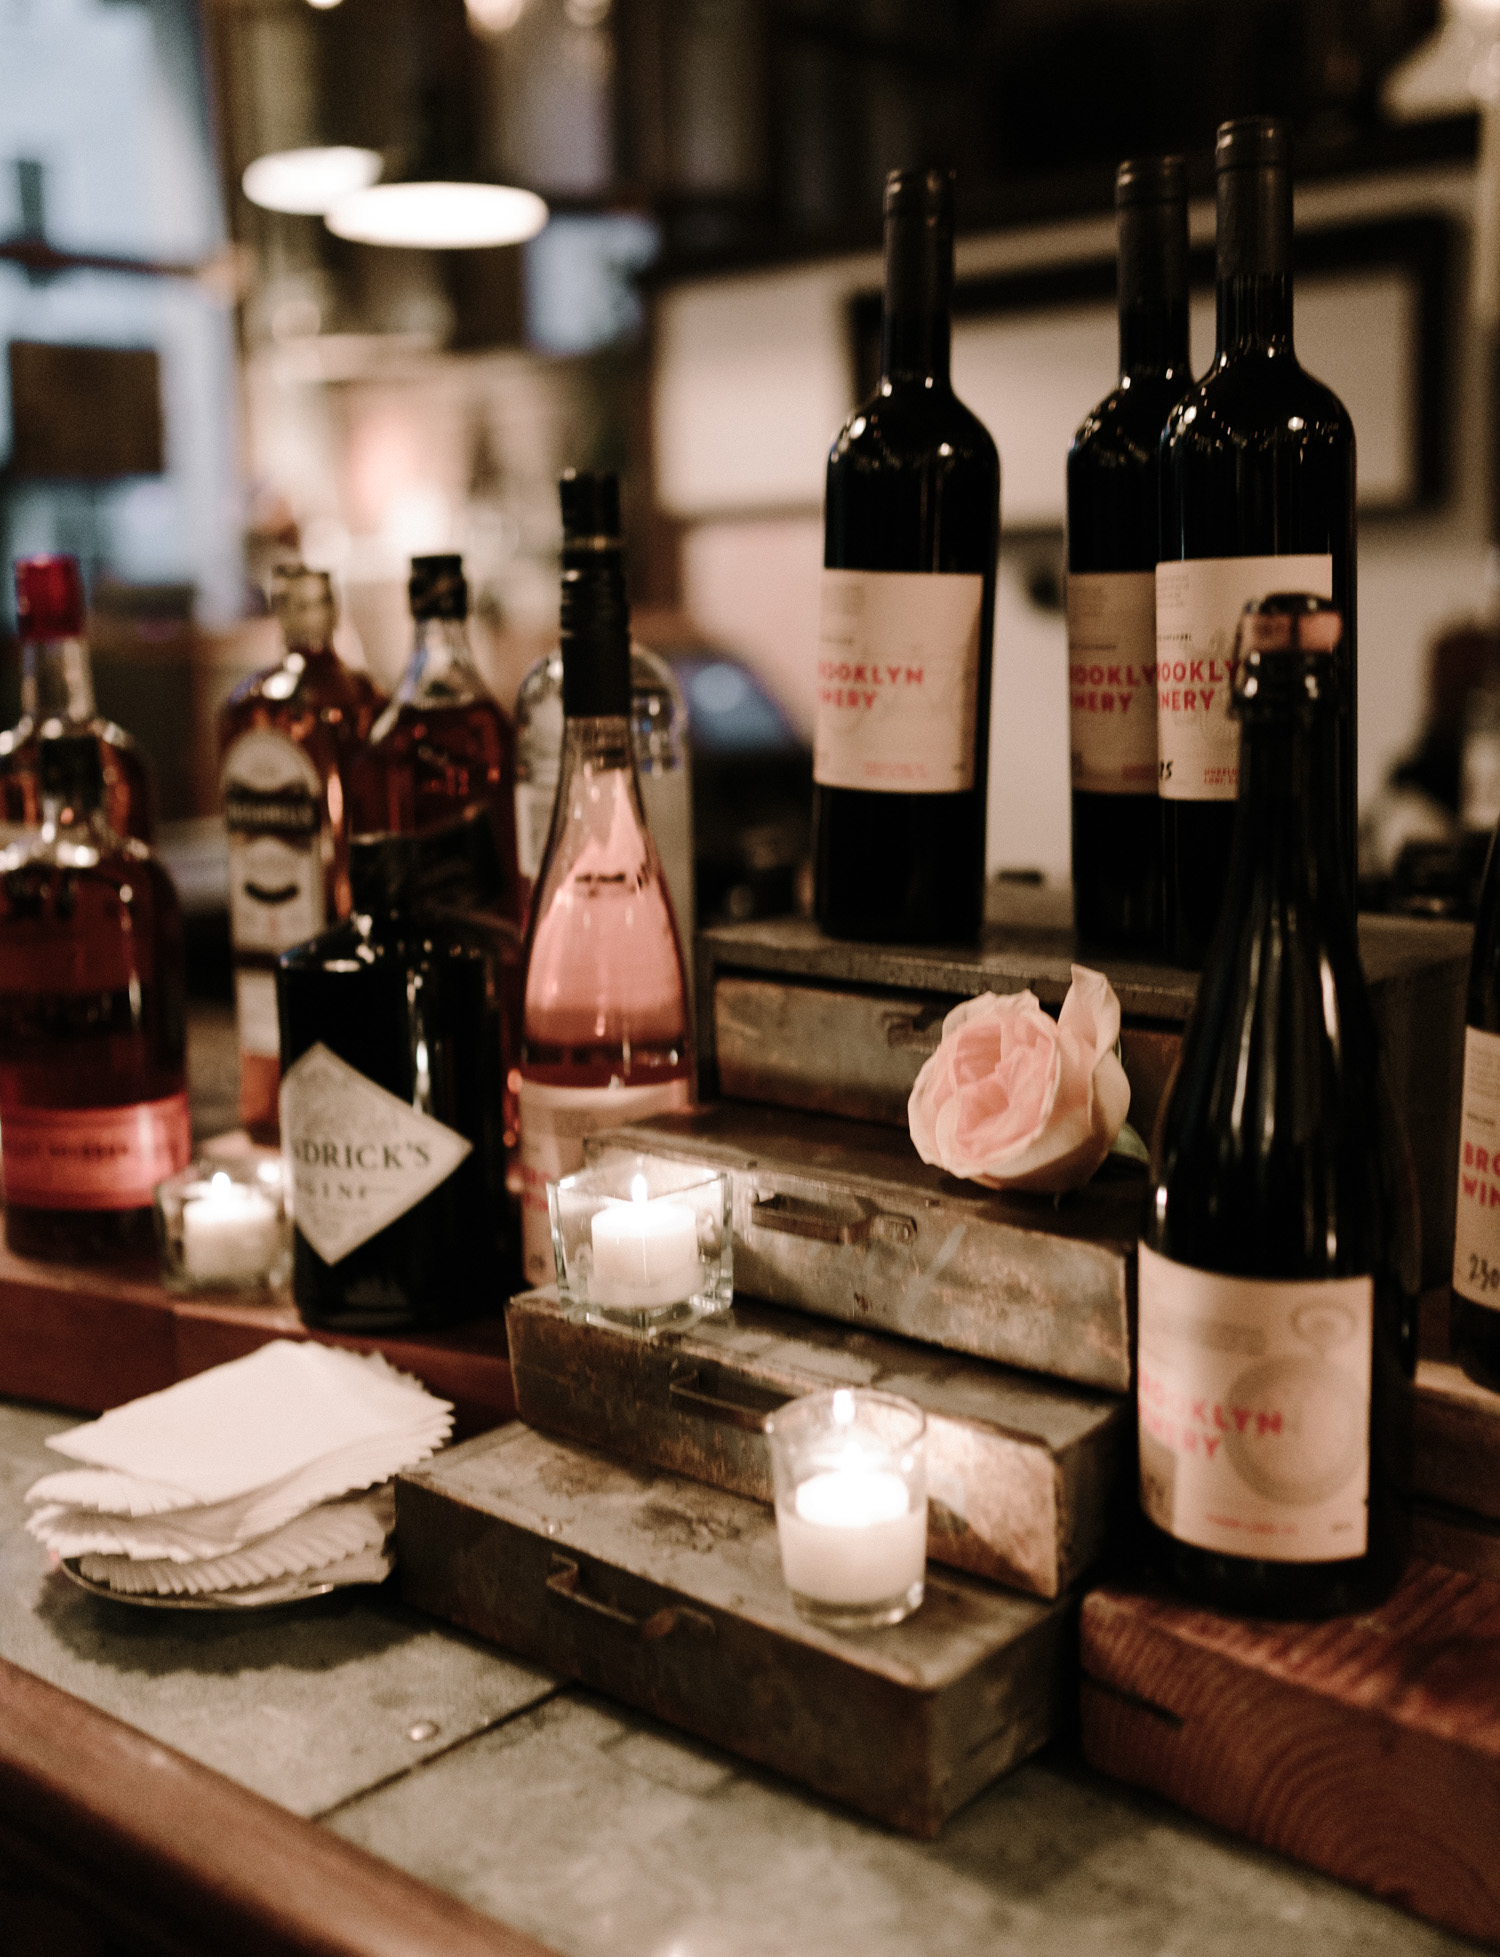 A candlelit display with bottles of wine and flowers for a same sex winter wedding at Brooklyn Winery in Brooklyn, New York City